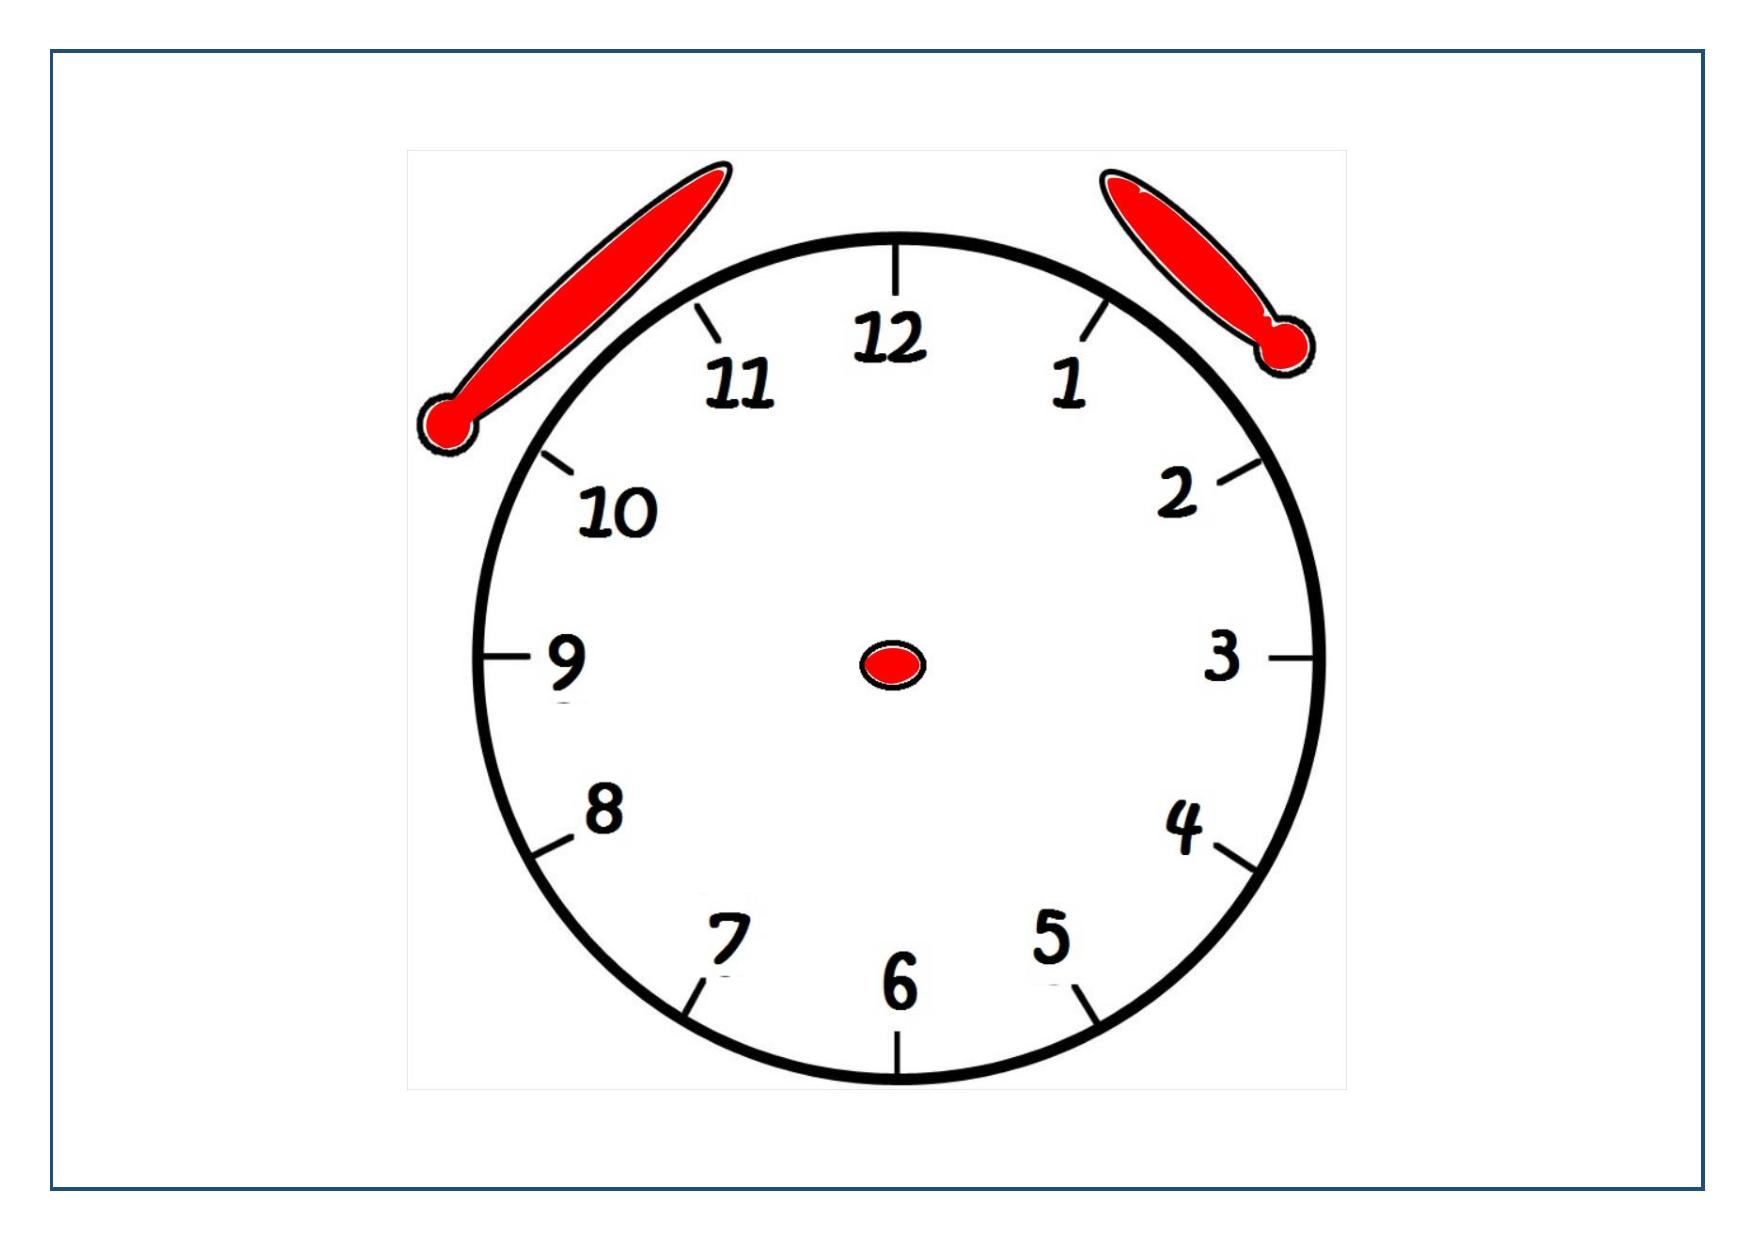 Die Zeit/ the time    Practice telling the time in German! Move the hands and let your students read the time. Say the hour and then the minutes. Say the word 'Uhr'(time)between… Continue